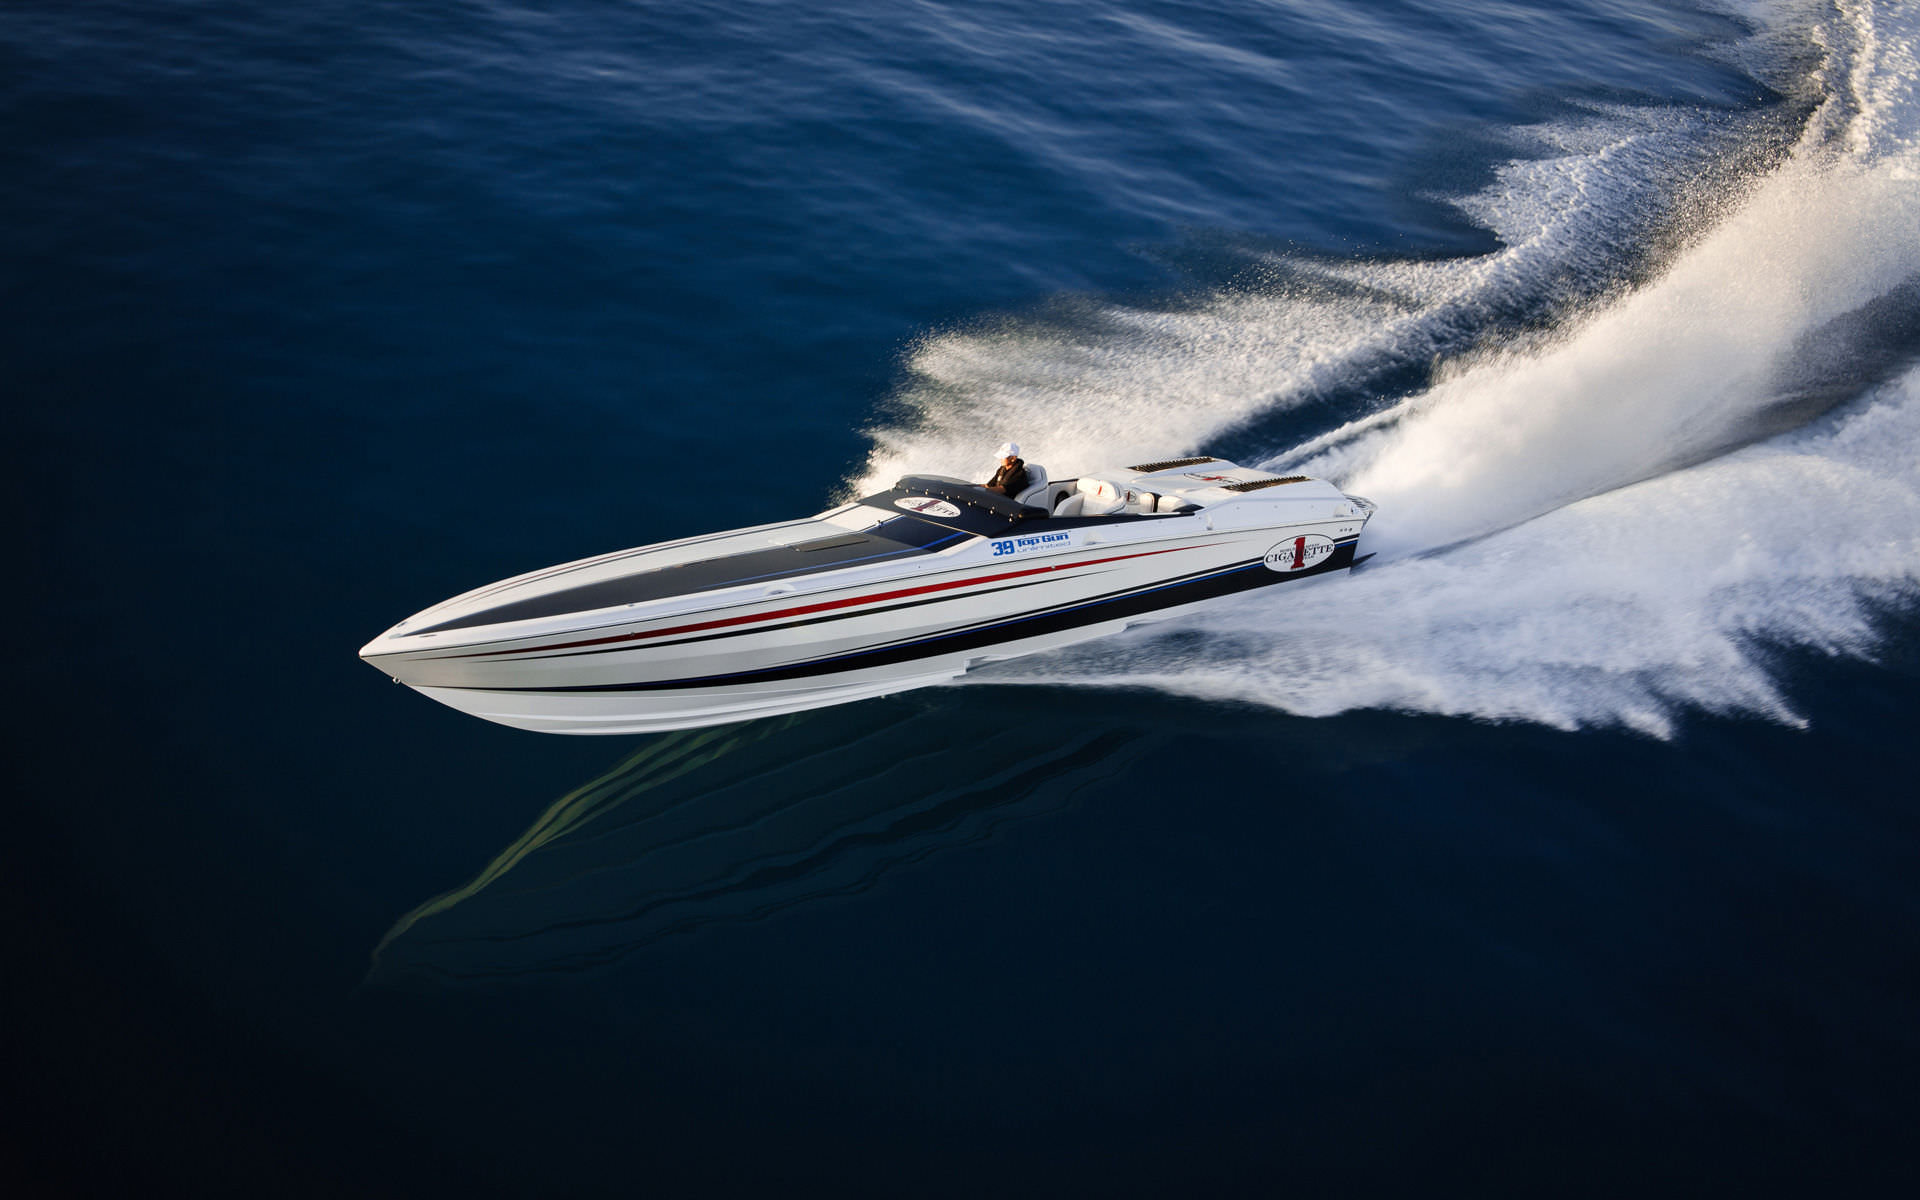 speed boat Find a speed boat on gumtree, the #1 site for boats, kayaks & jet skis for sale classifieds ads in the uk.